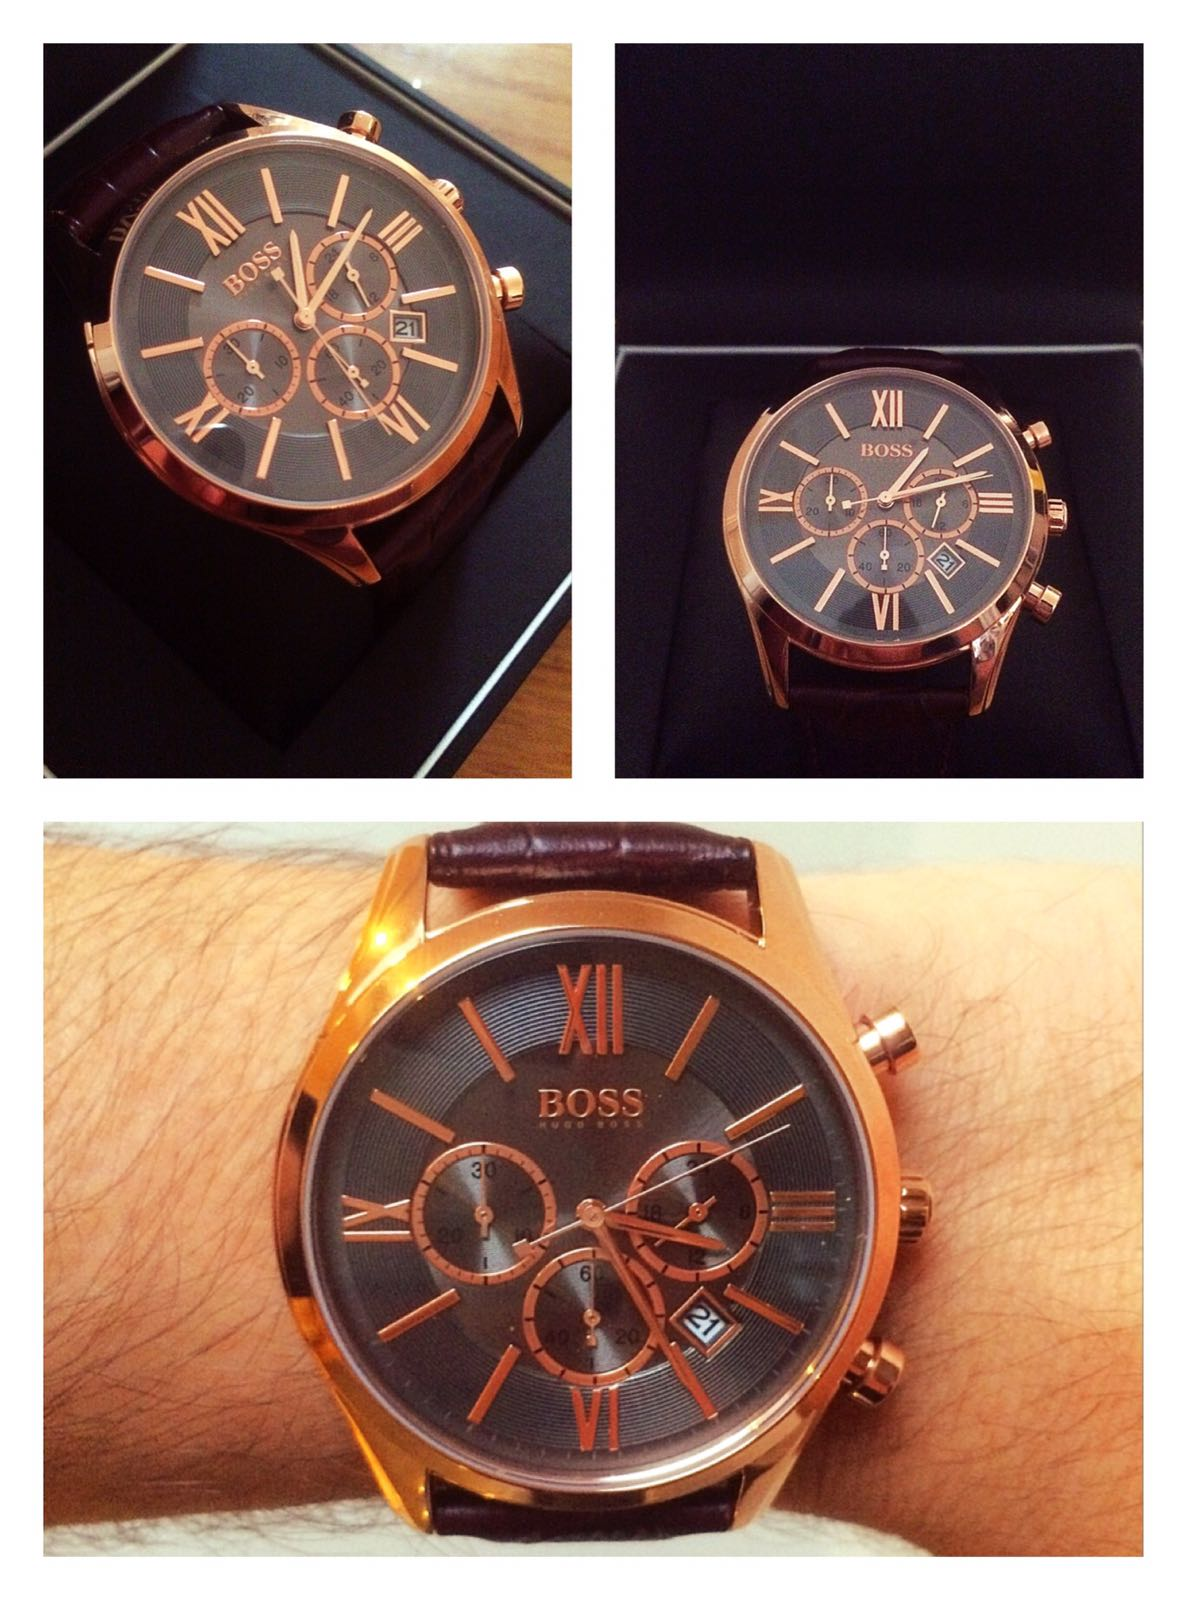 764c9748f I bought this watch for my boyfriend for Christmas. He is extremely picky  about anything relating to fashion and I was quite worried about choosing a  watch ...